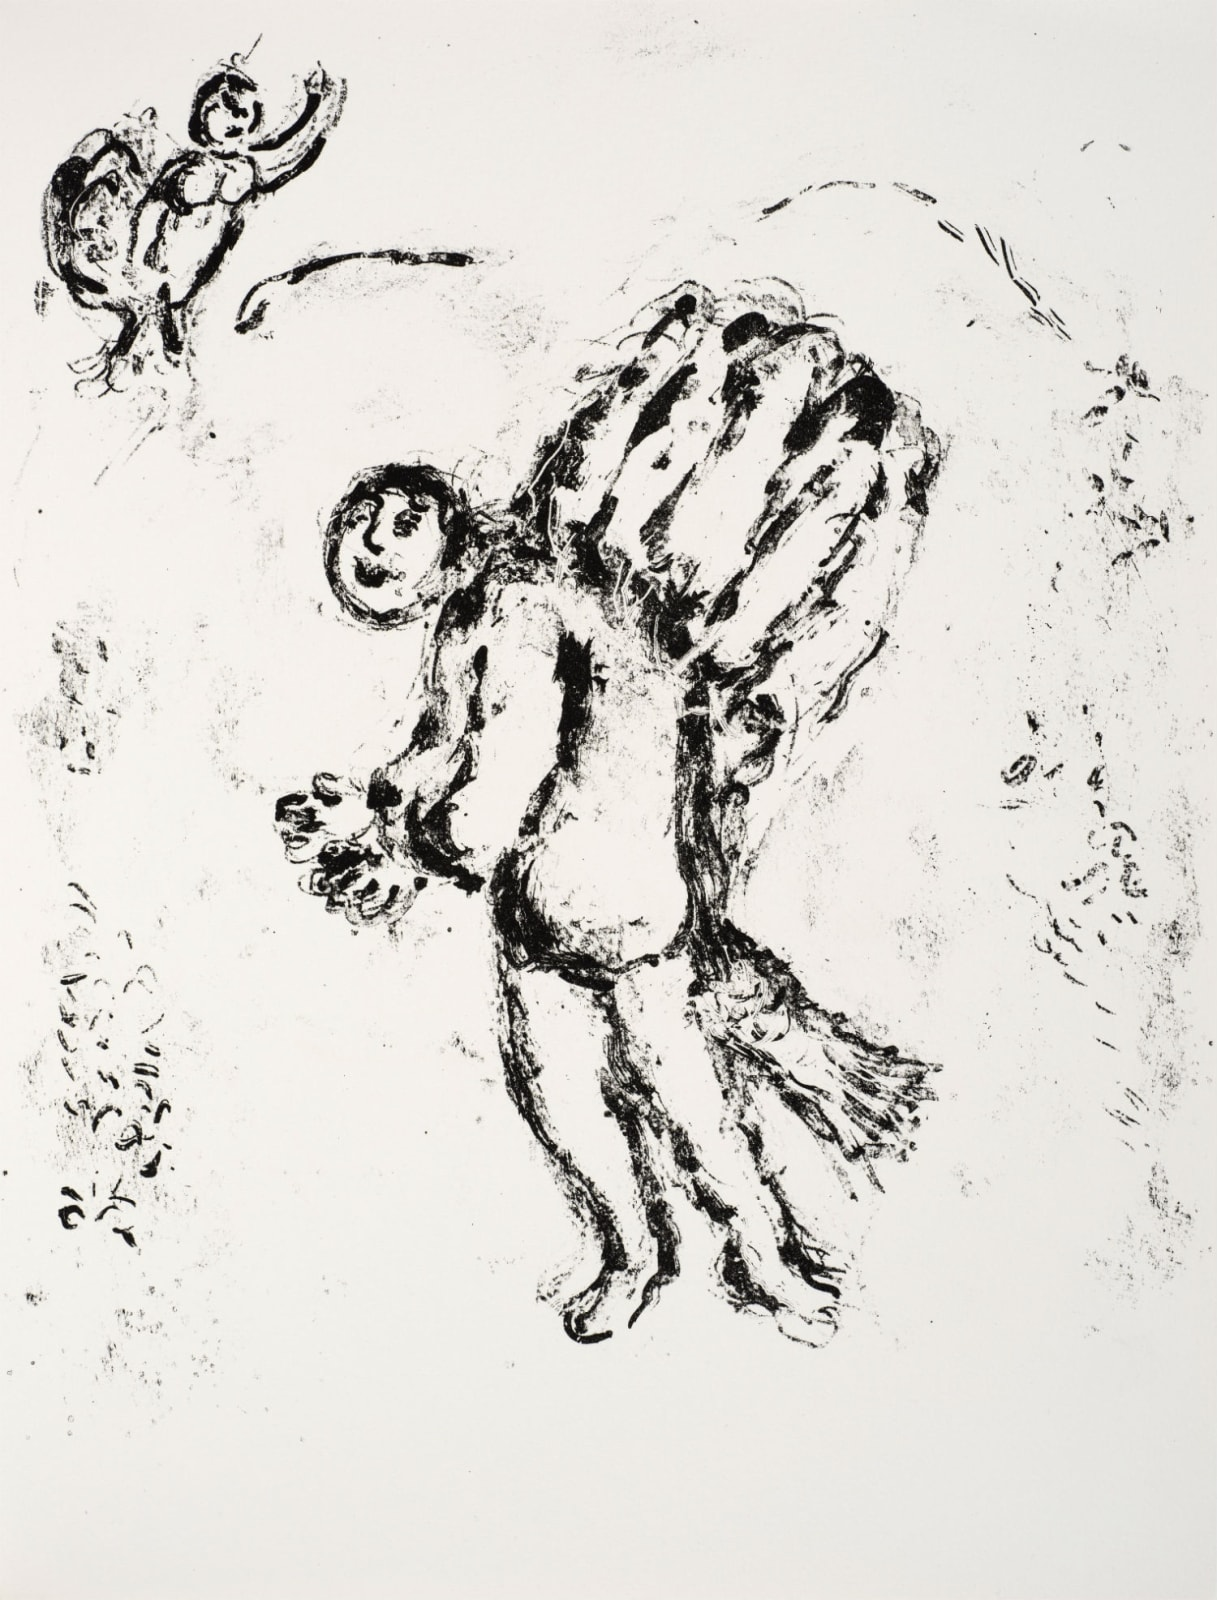 Marc Chagall (1887-1985) Caliban, with fish-tail, carries firewood (Series: Shakespeare The Tempest) 1975 Lithograph 42.5 x 32.5 cm Ben Uri Collection © Marc Chagall estate To see and discover more about this artist click here